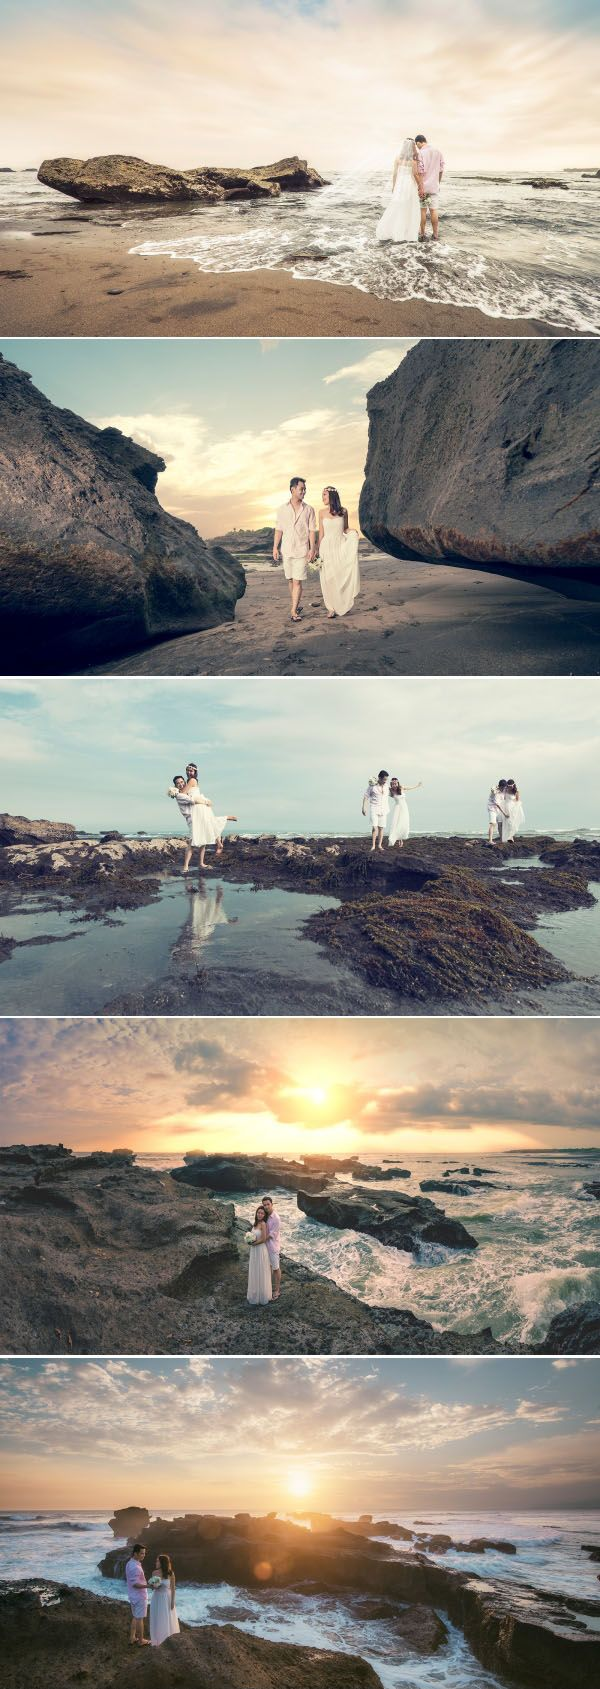 Beautiful sunset prewedding photo in Bali // Pat Law Photography // http://www.onethreeonefour.com/listing/PatLawPhotography/559e975ac75a109b414725e9